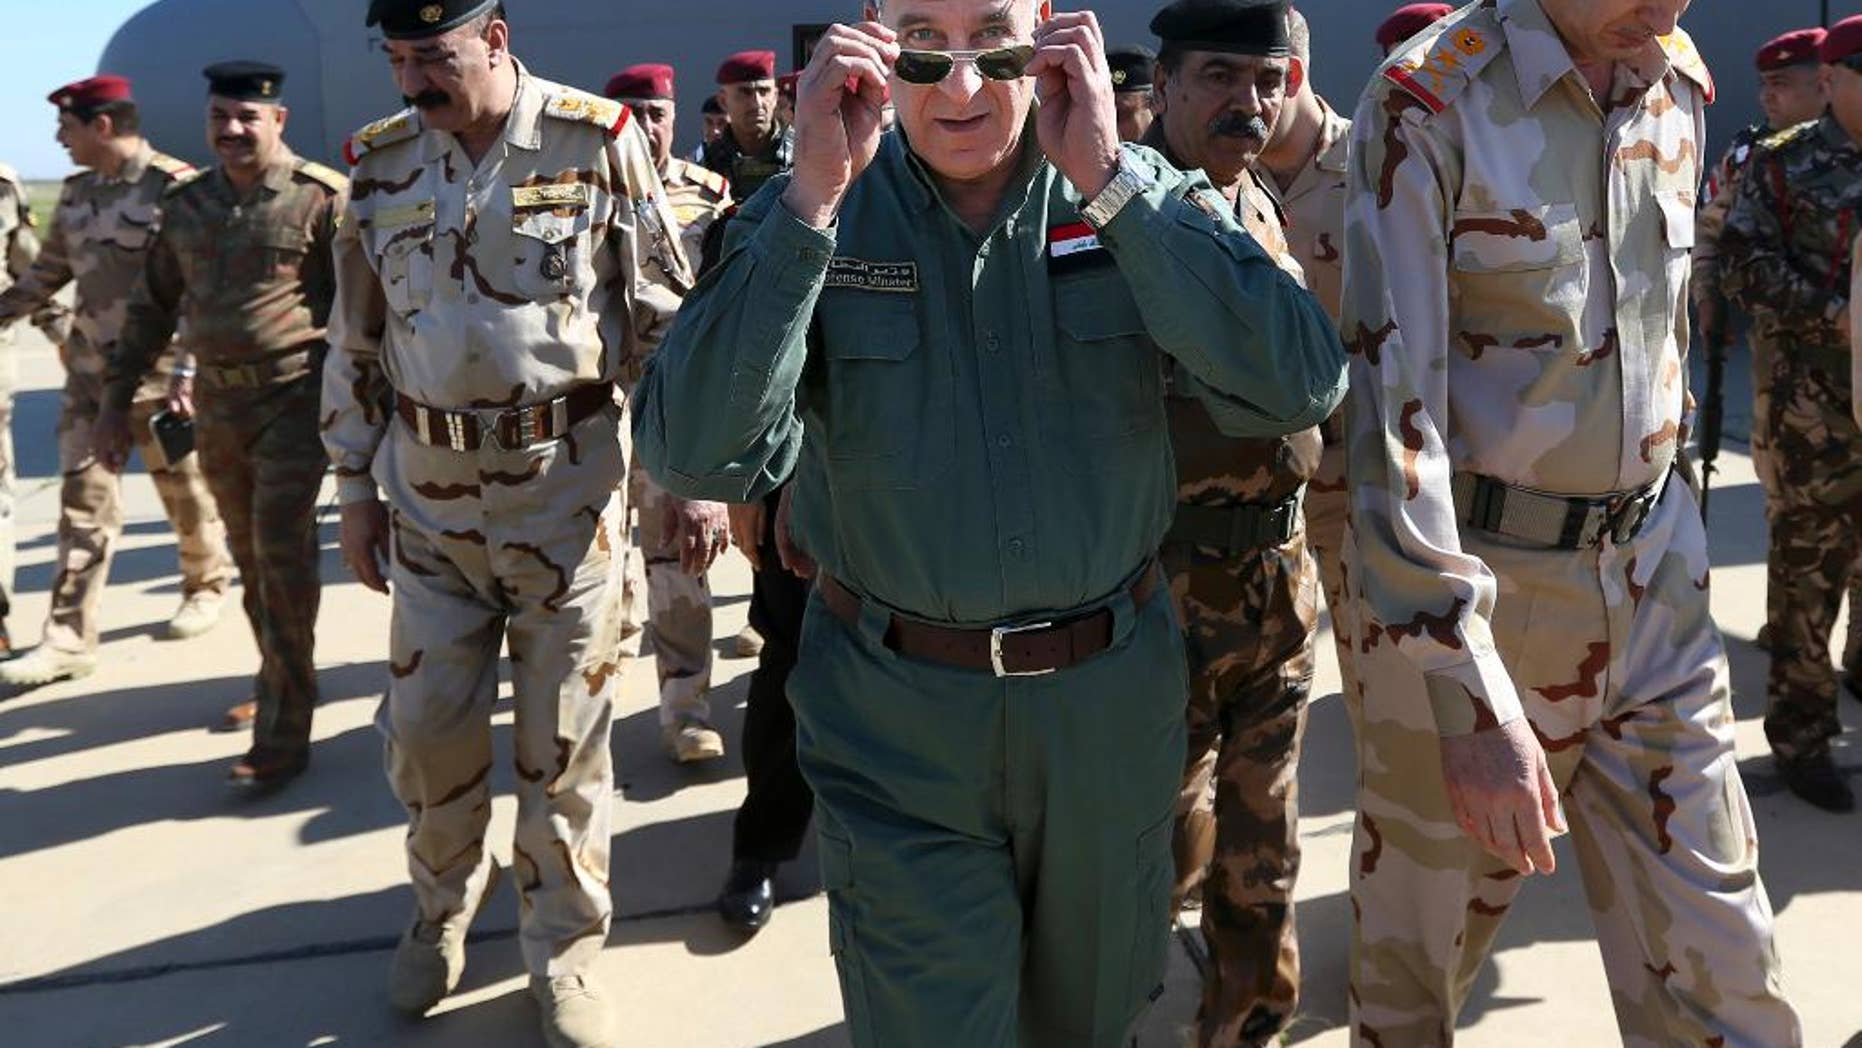 FILE - In this Wednesday, March 9, 2016 file photo, Iraqi Defense Minister Khaled al-Obeidi, center, arrives at a military a base outside Tikrit, 130 kilometers (80 miles) north of Baghdad, Iraq. Al-Obeidi has received a no-confidence vote from parliament just as Iraqi forces retook a key northern town near the Islamic State-held city of Mosul on Thursday, Aug. 25, 2016. He is the first sitting defense minister to receive a no confidence vote from parliament since the overthrow of former Iraqi leader Saddam Hussein in 2003.  (AP Photo/Hadi Mizban, File)